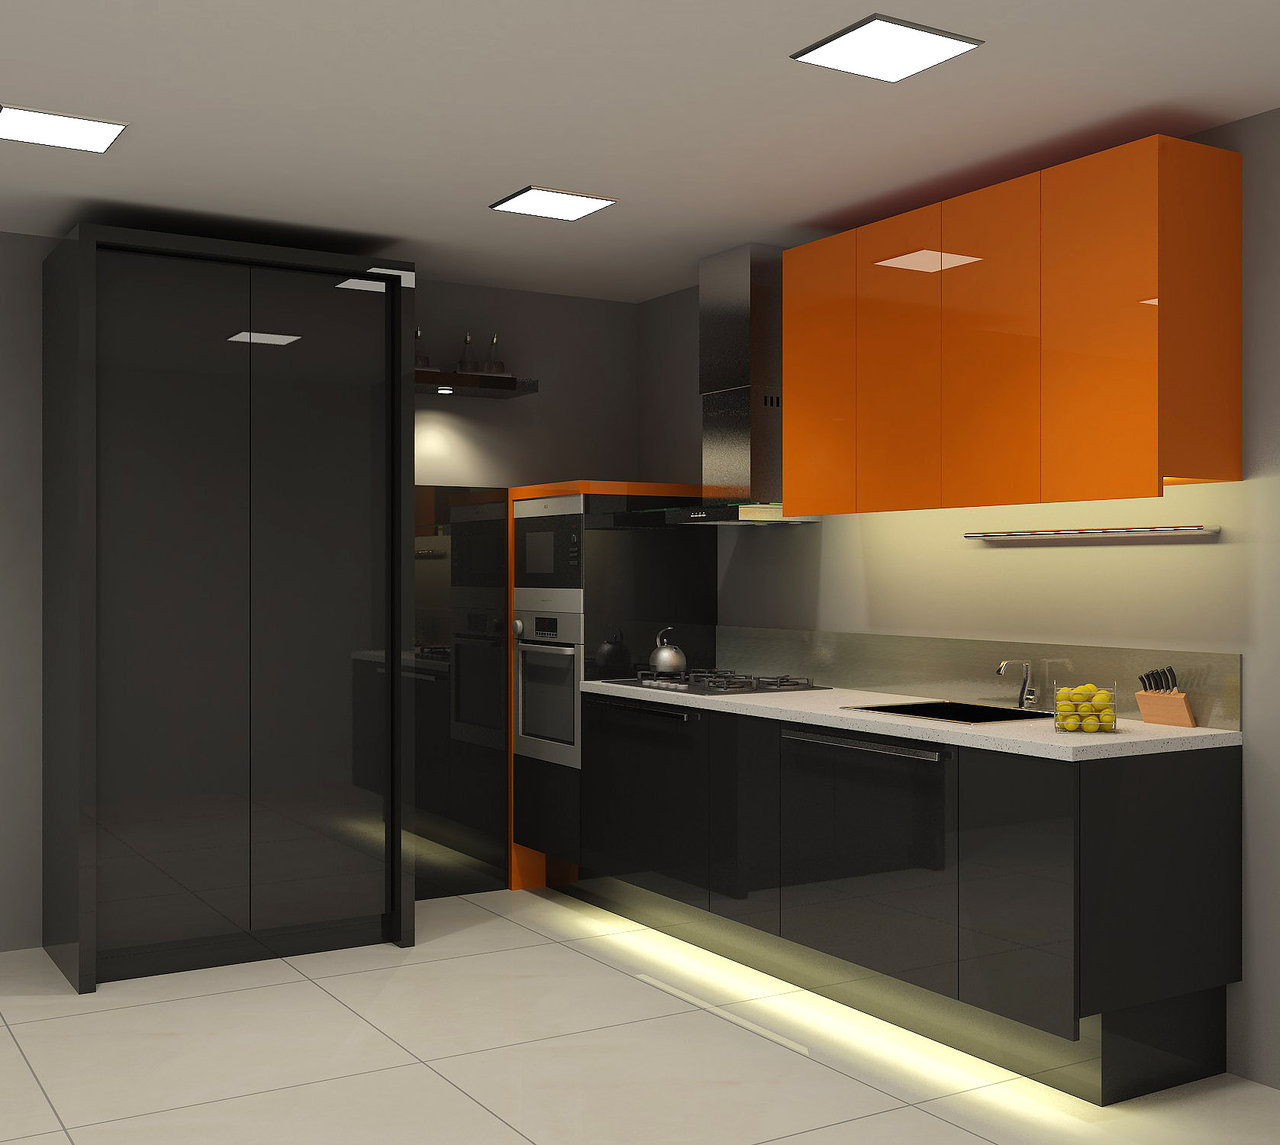 Orange Kitchen Room With White Cabinets Stock Image: Orange Kitchens